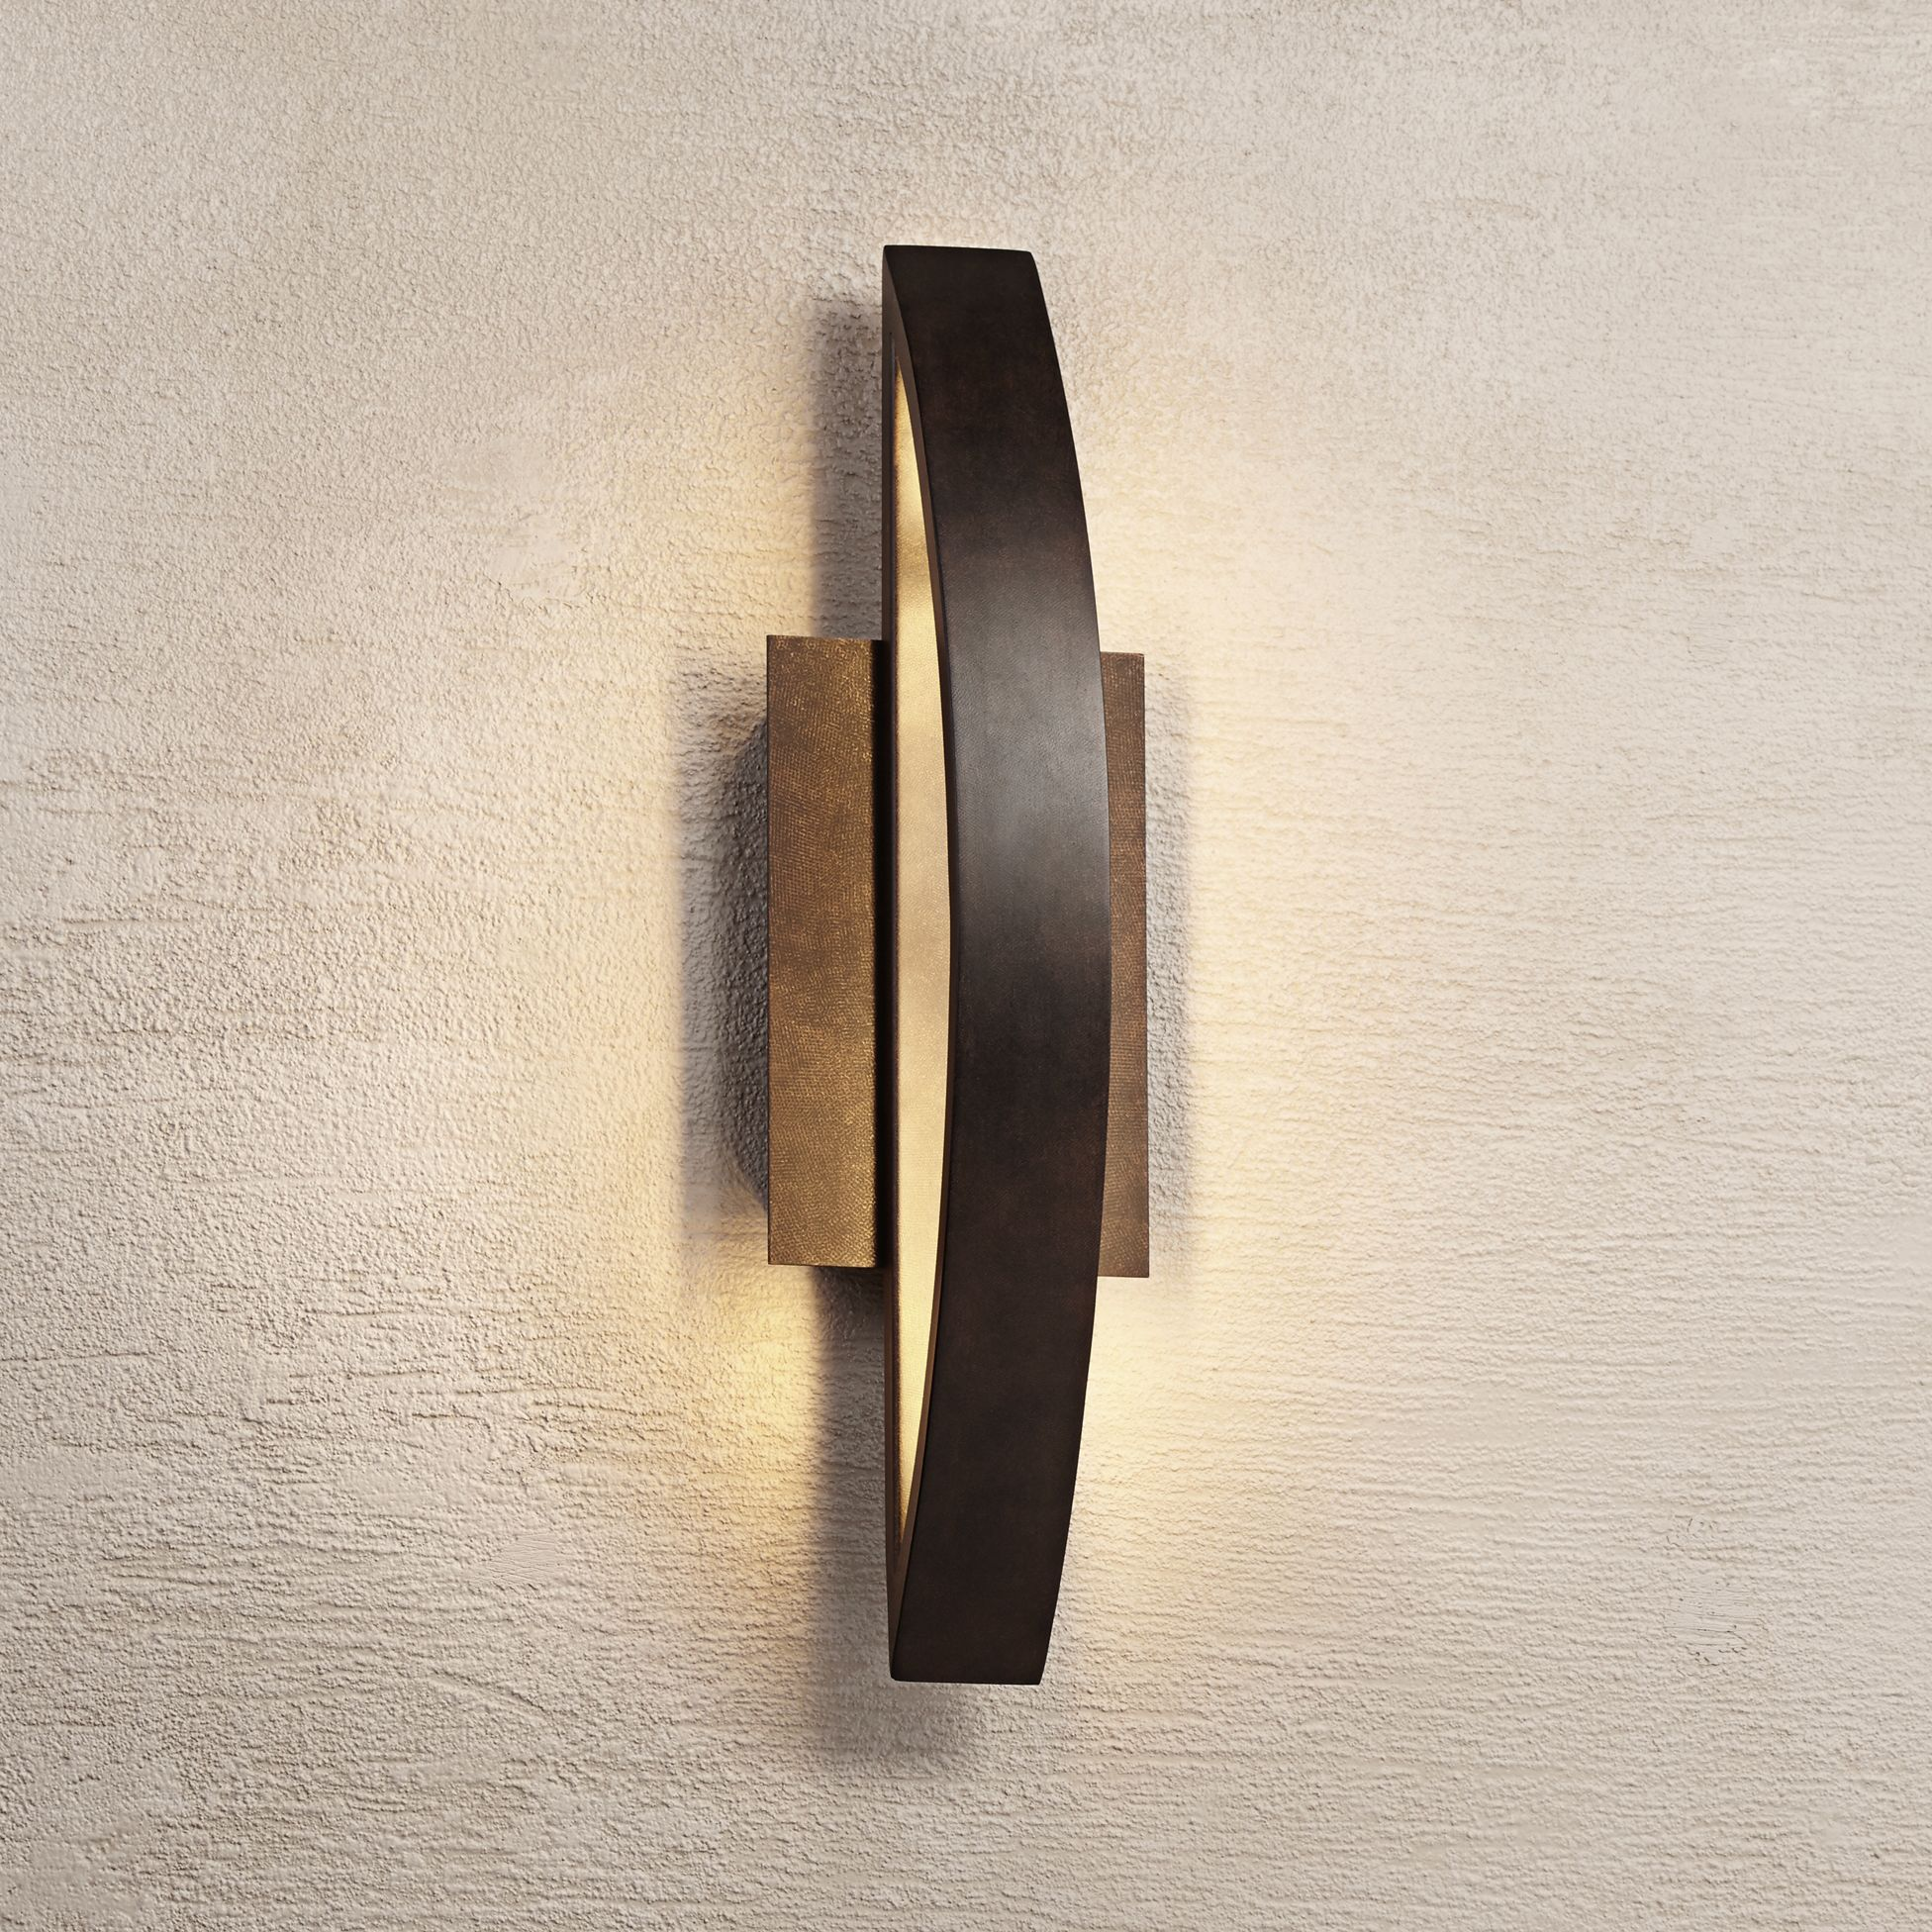 Captivating Possini Euro Coppered Arch Indoor Outdoor LED Wall Sconce